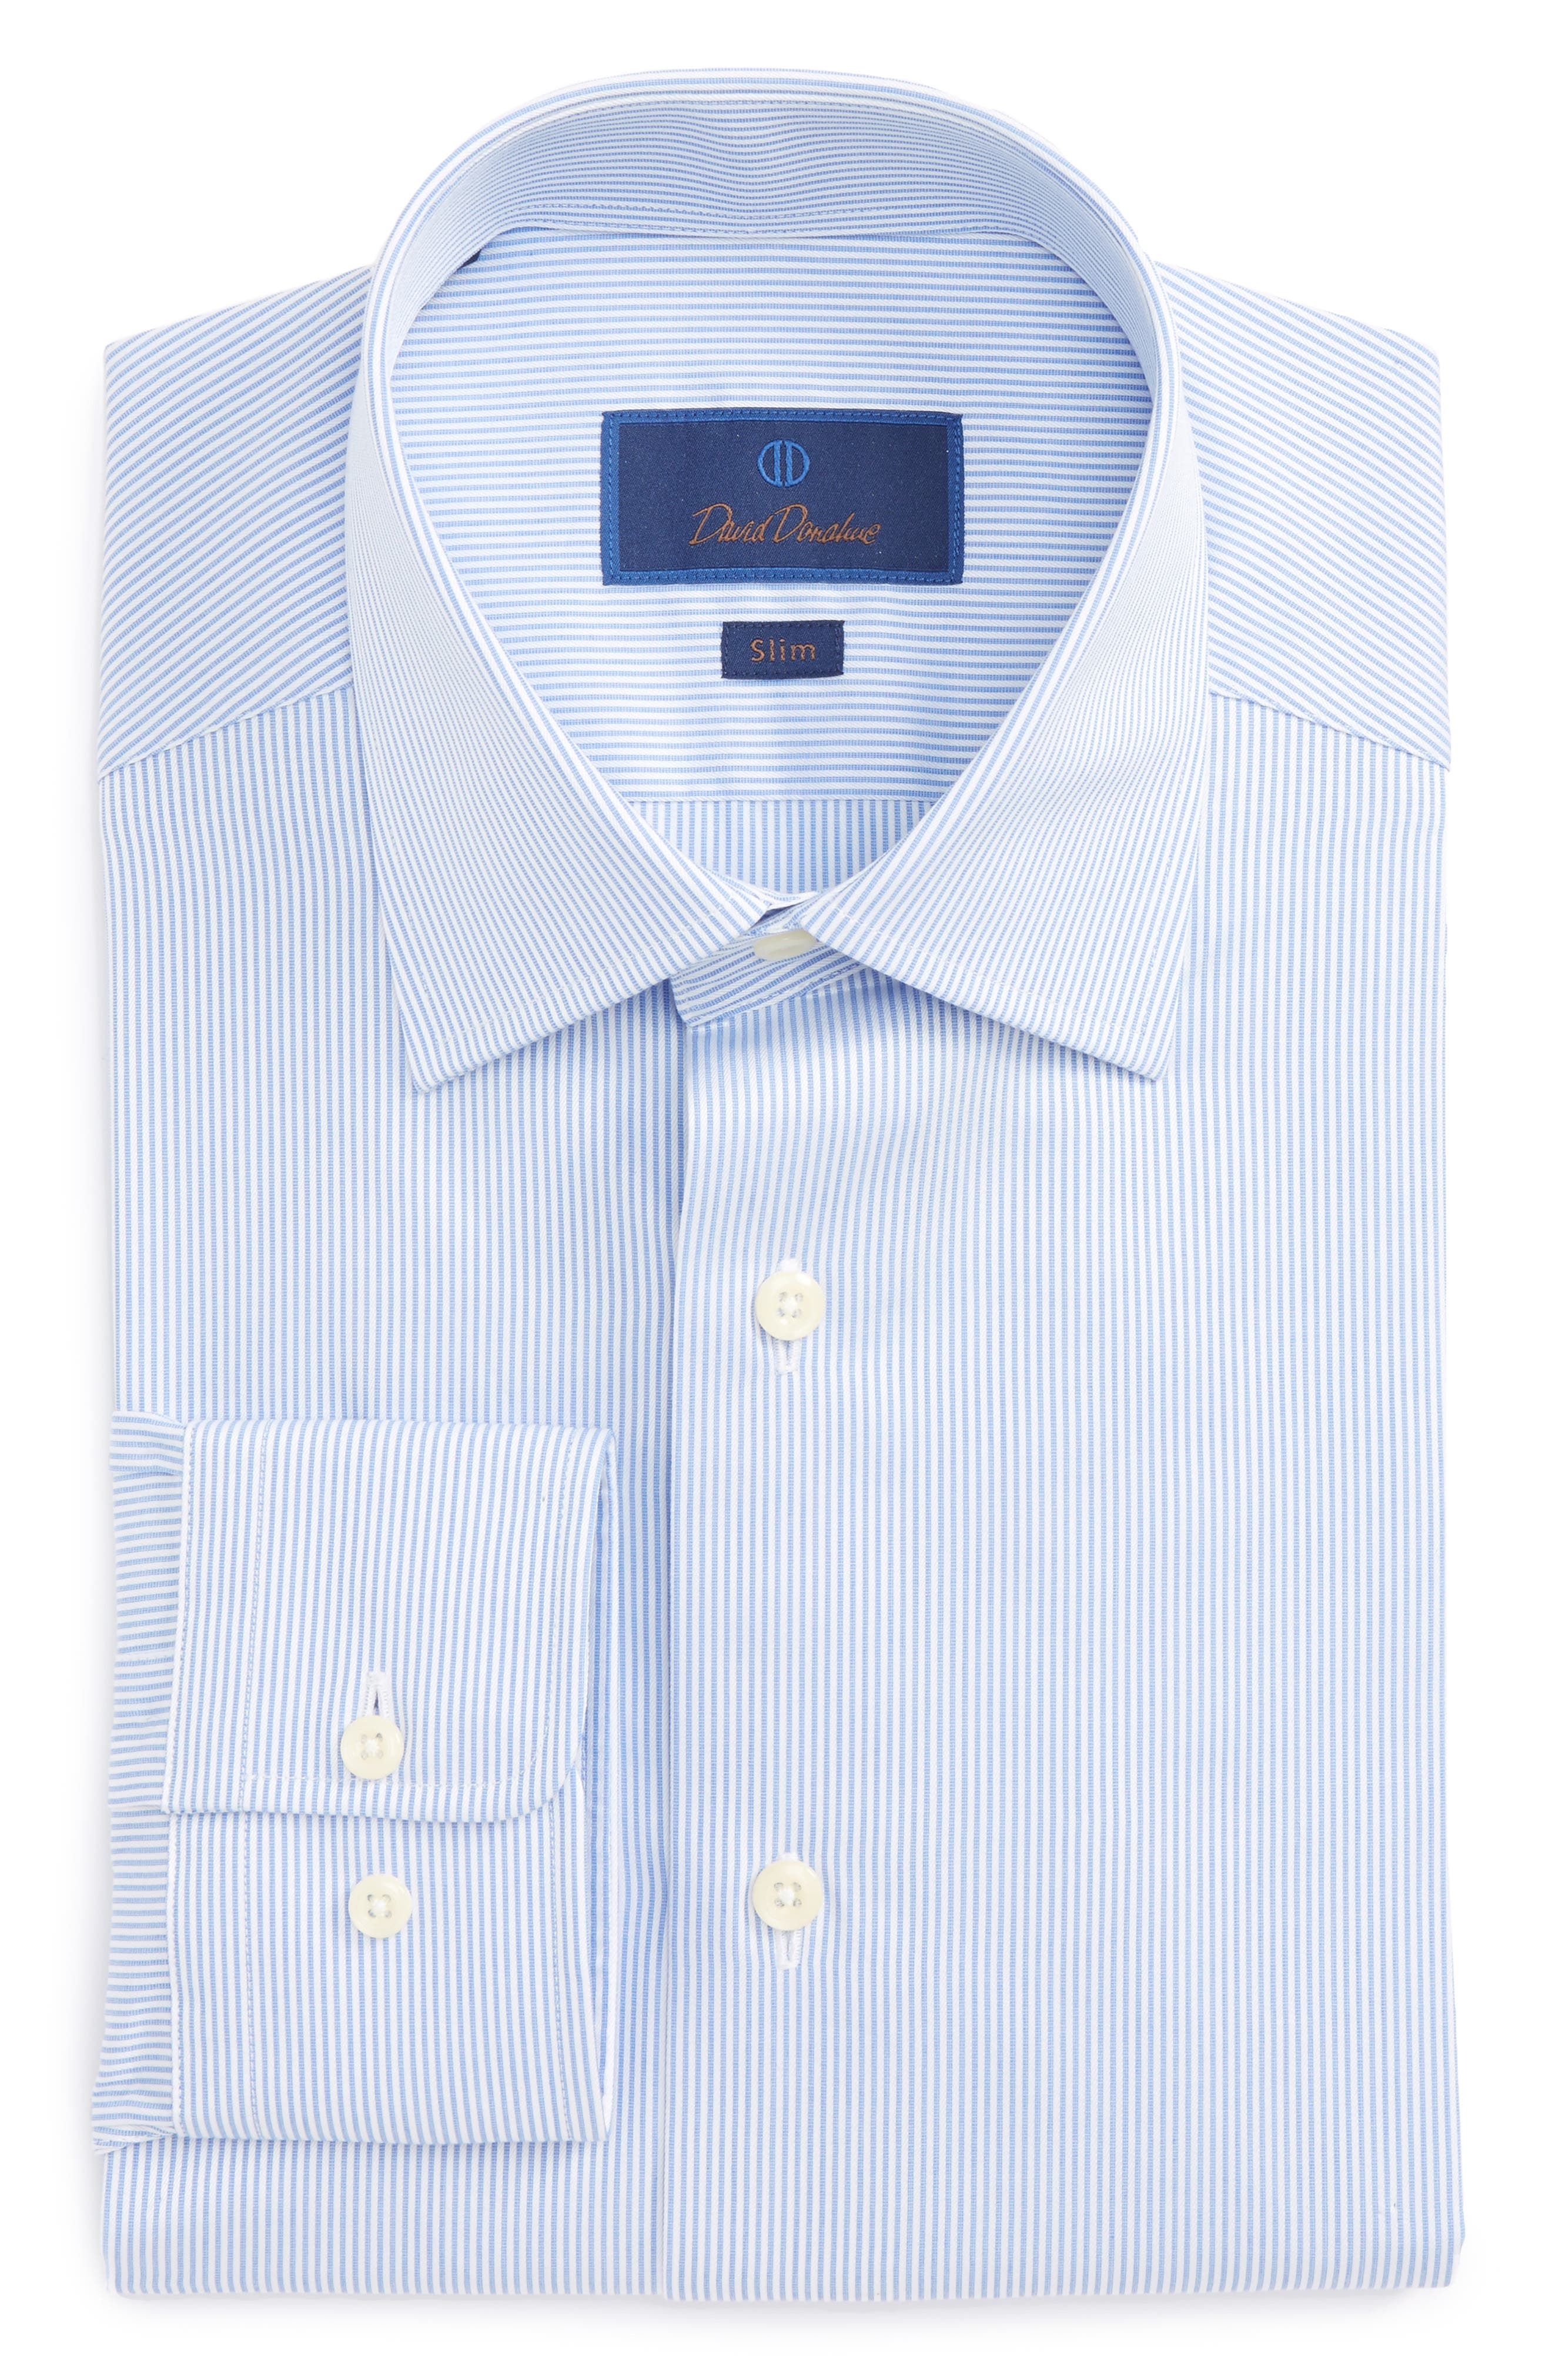 Slim Fit Stripe Dress Shirt,                             Main thumbnail 1, color,                             Blue